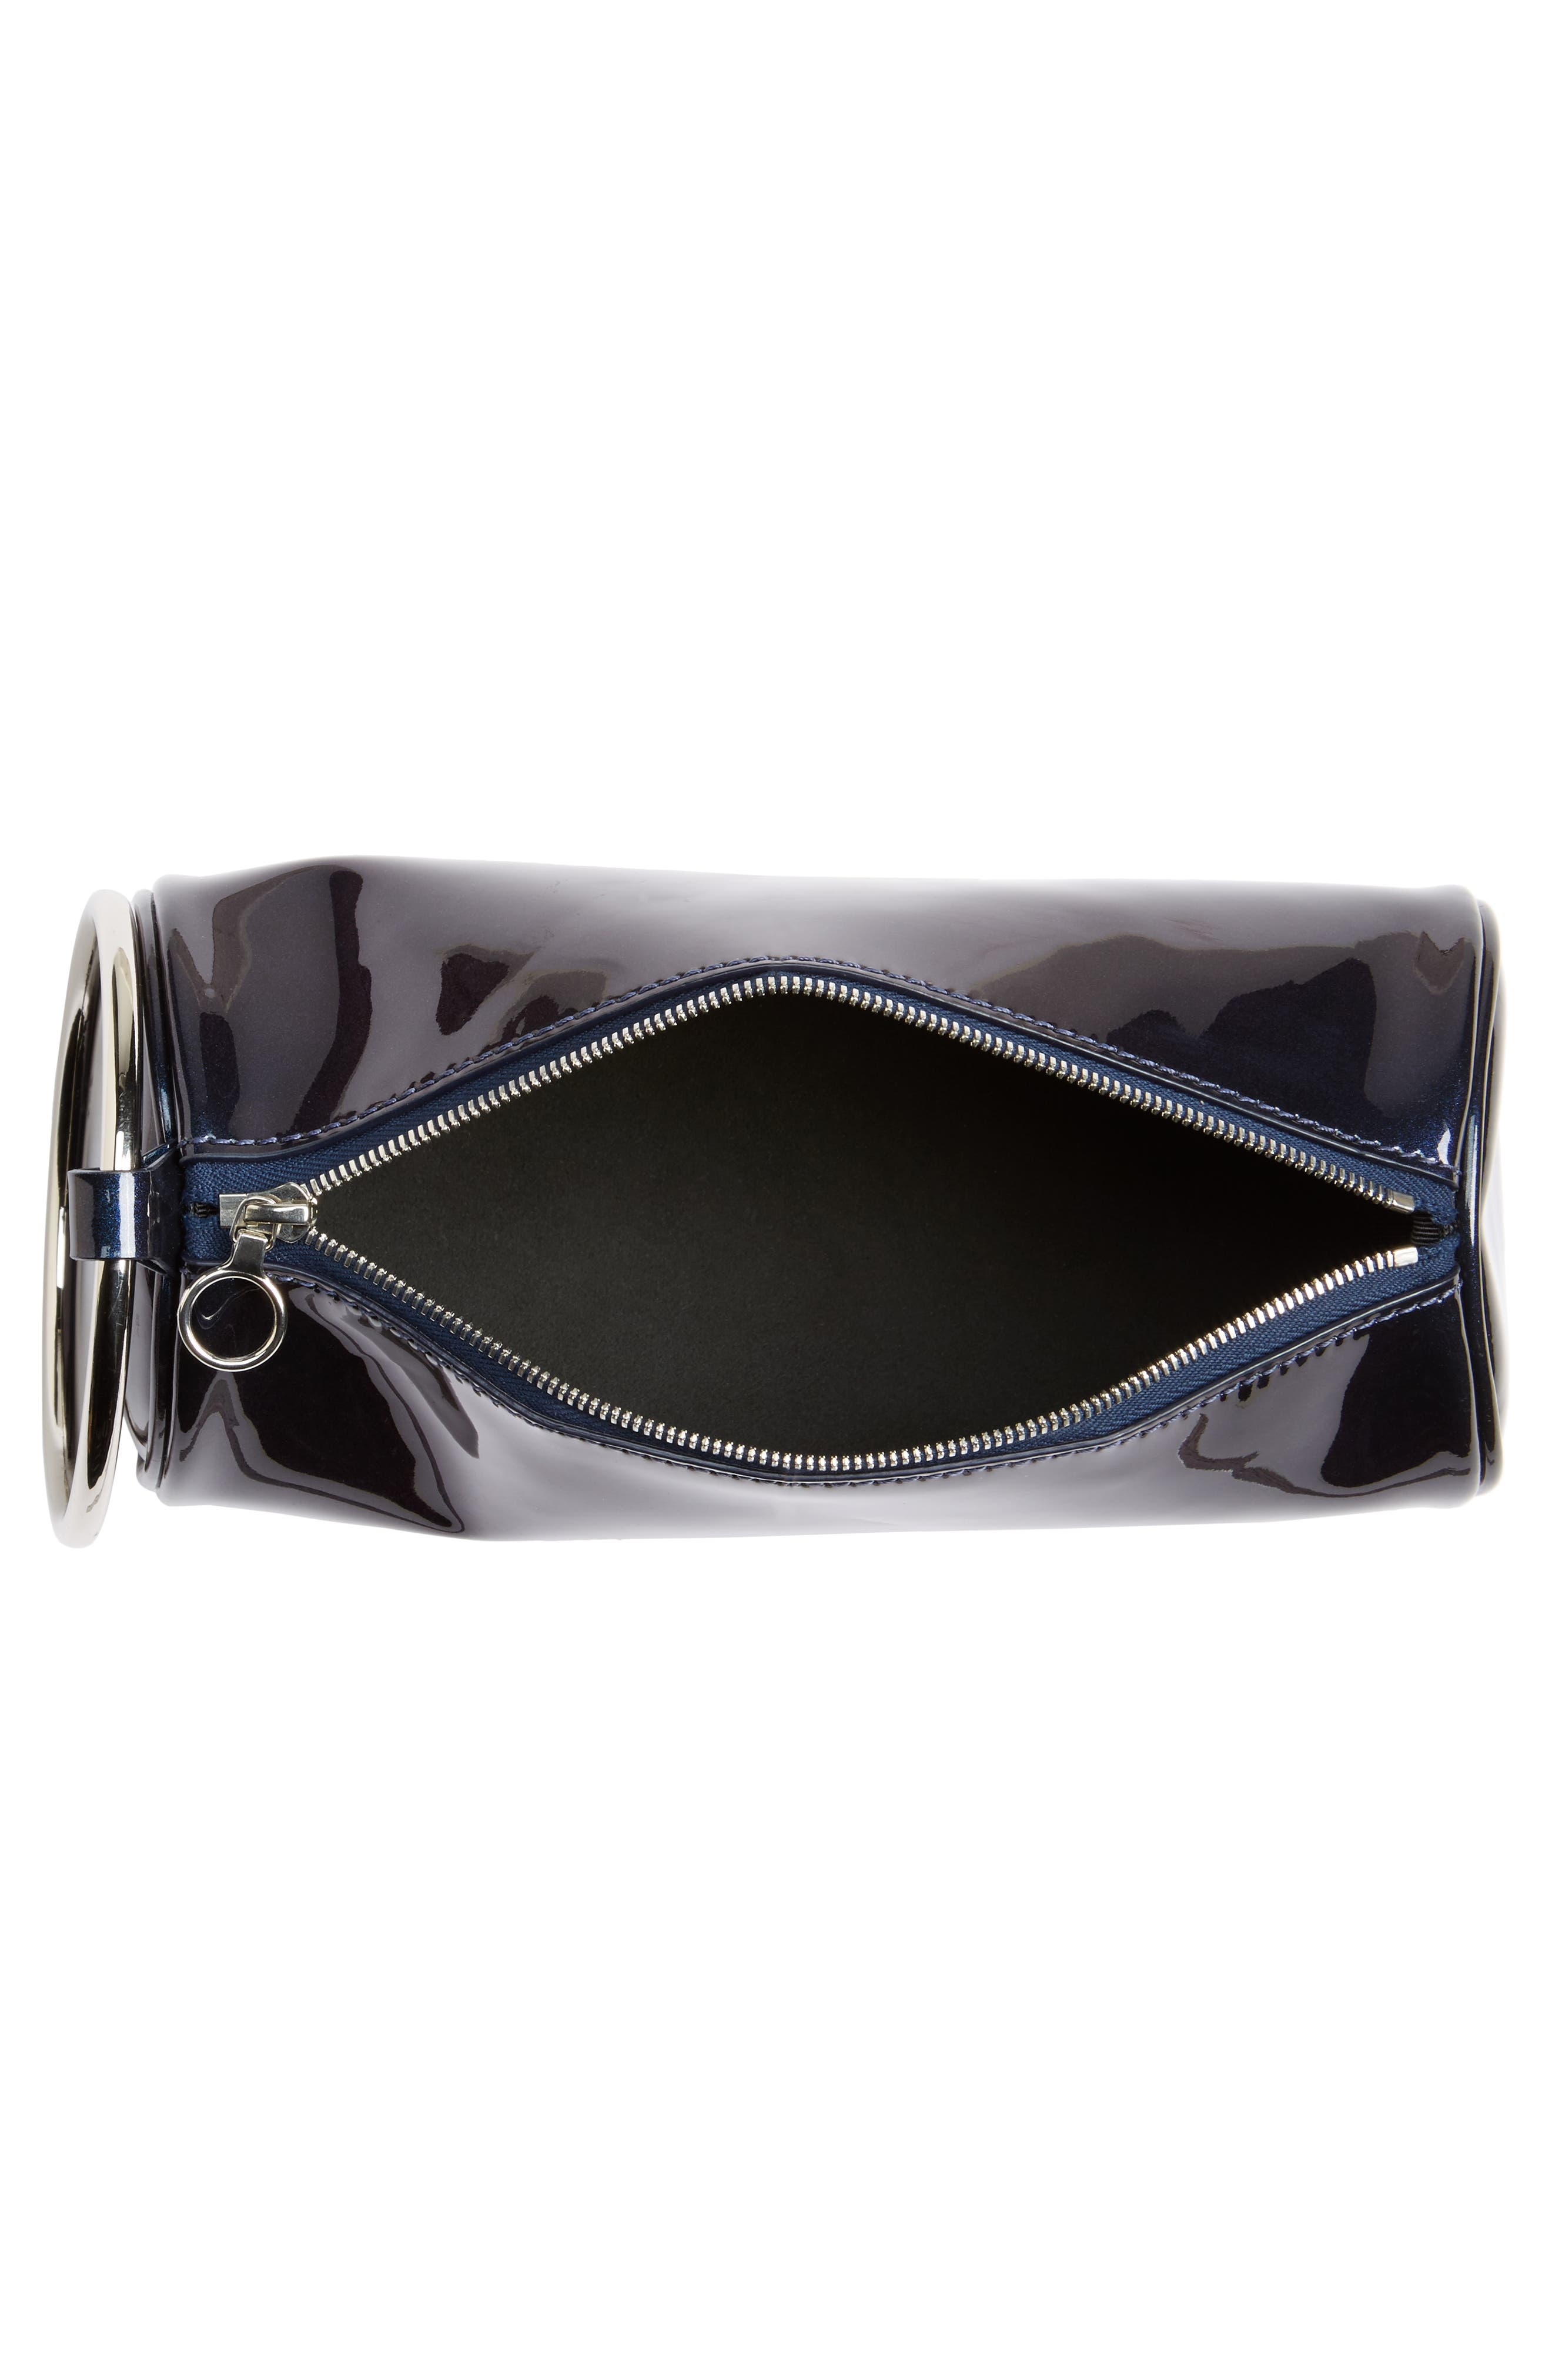 Iridescent Leather Duffel Wristlet Clutch,                             Alternate thumbnail 6, color,                             Galaxy Navy